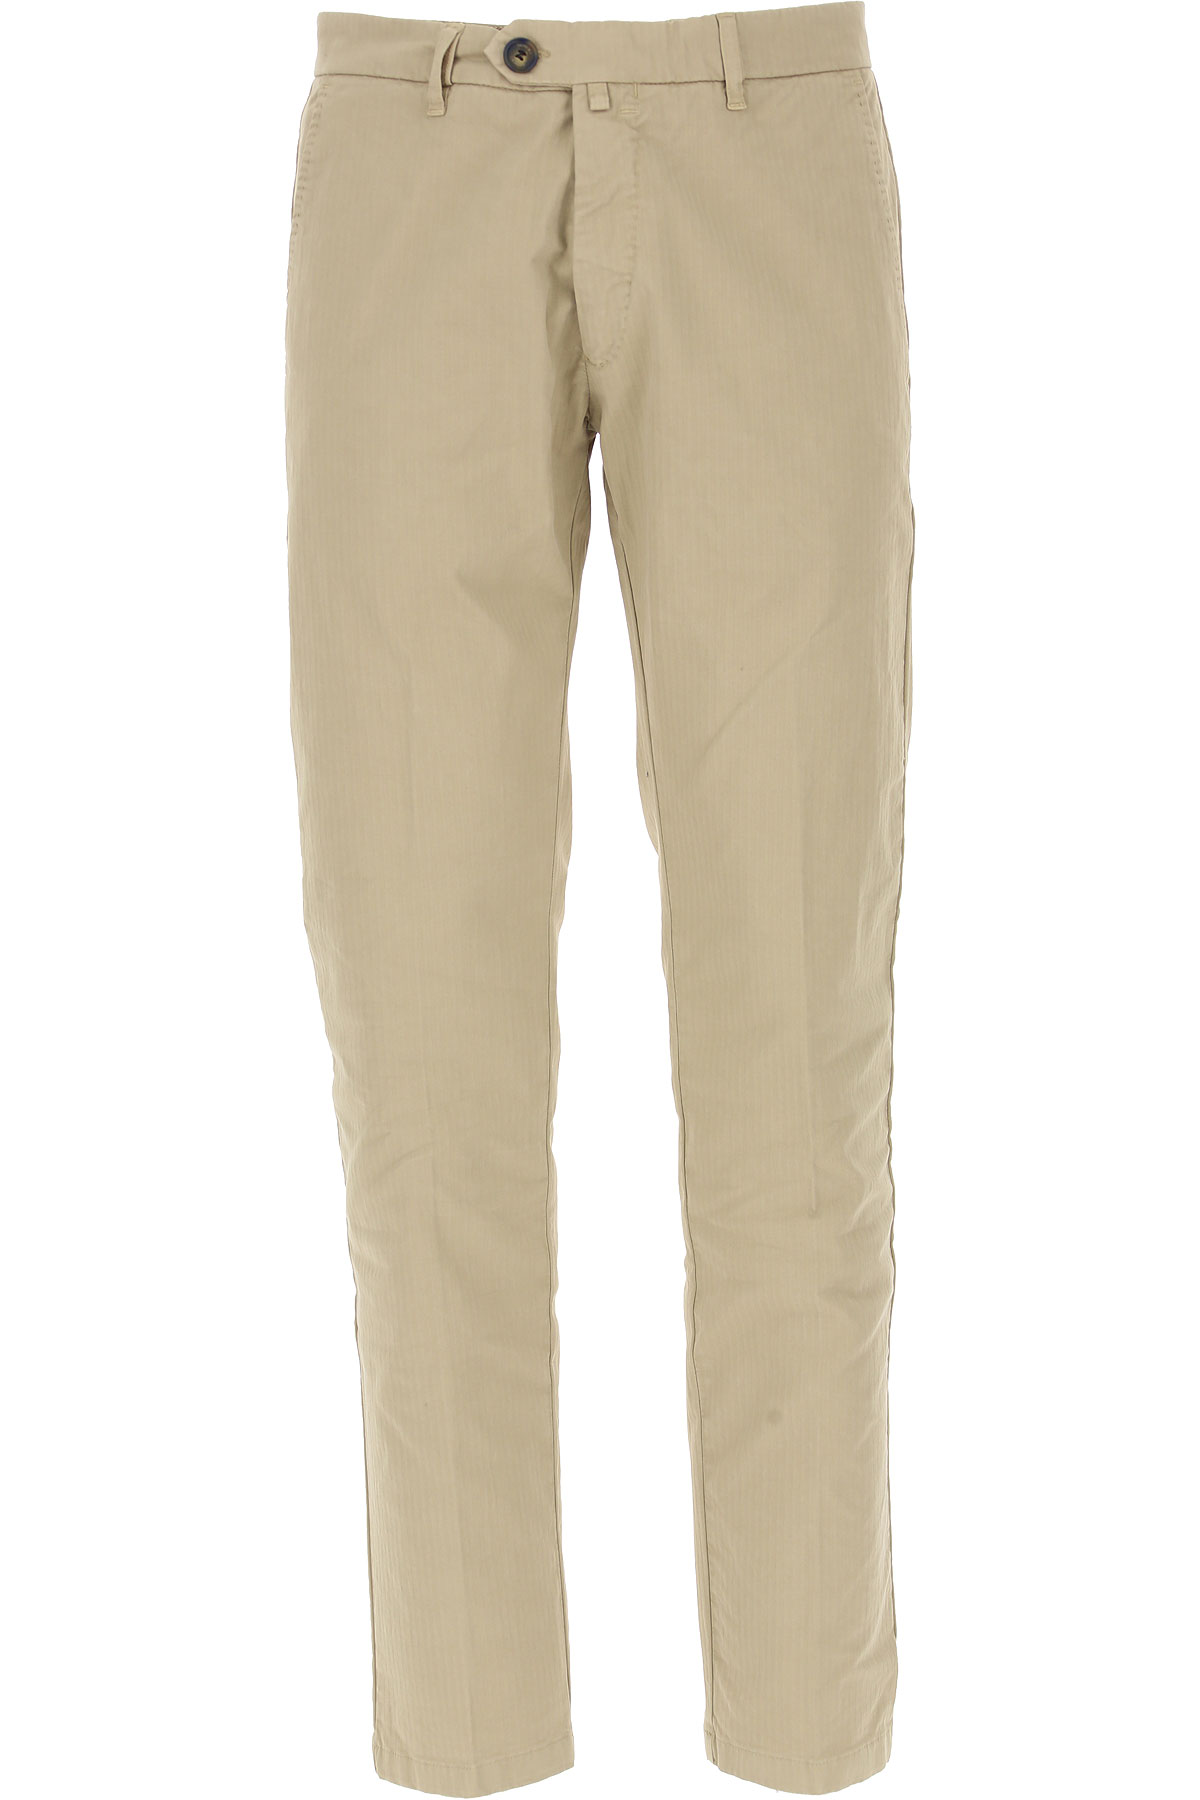 J.W. Brine Pants for Men, Beige, Cotton, 2019, 30 38